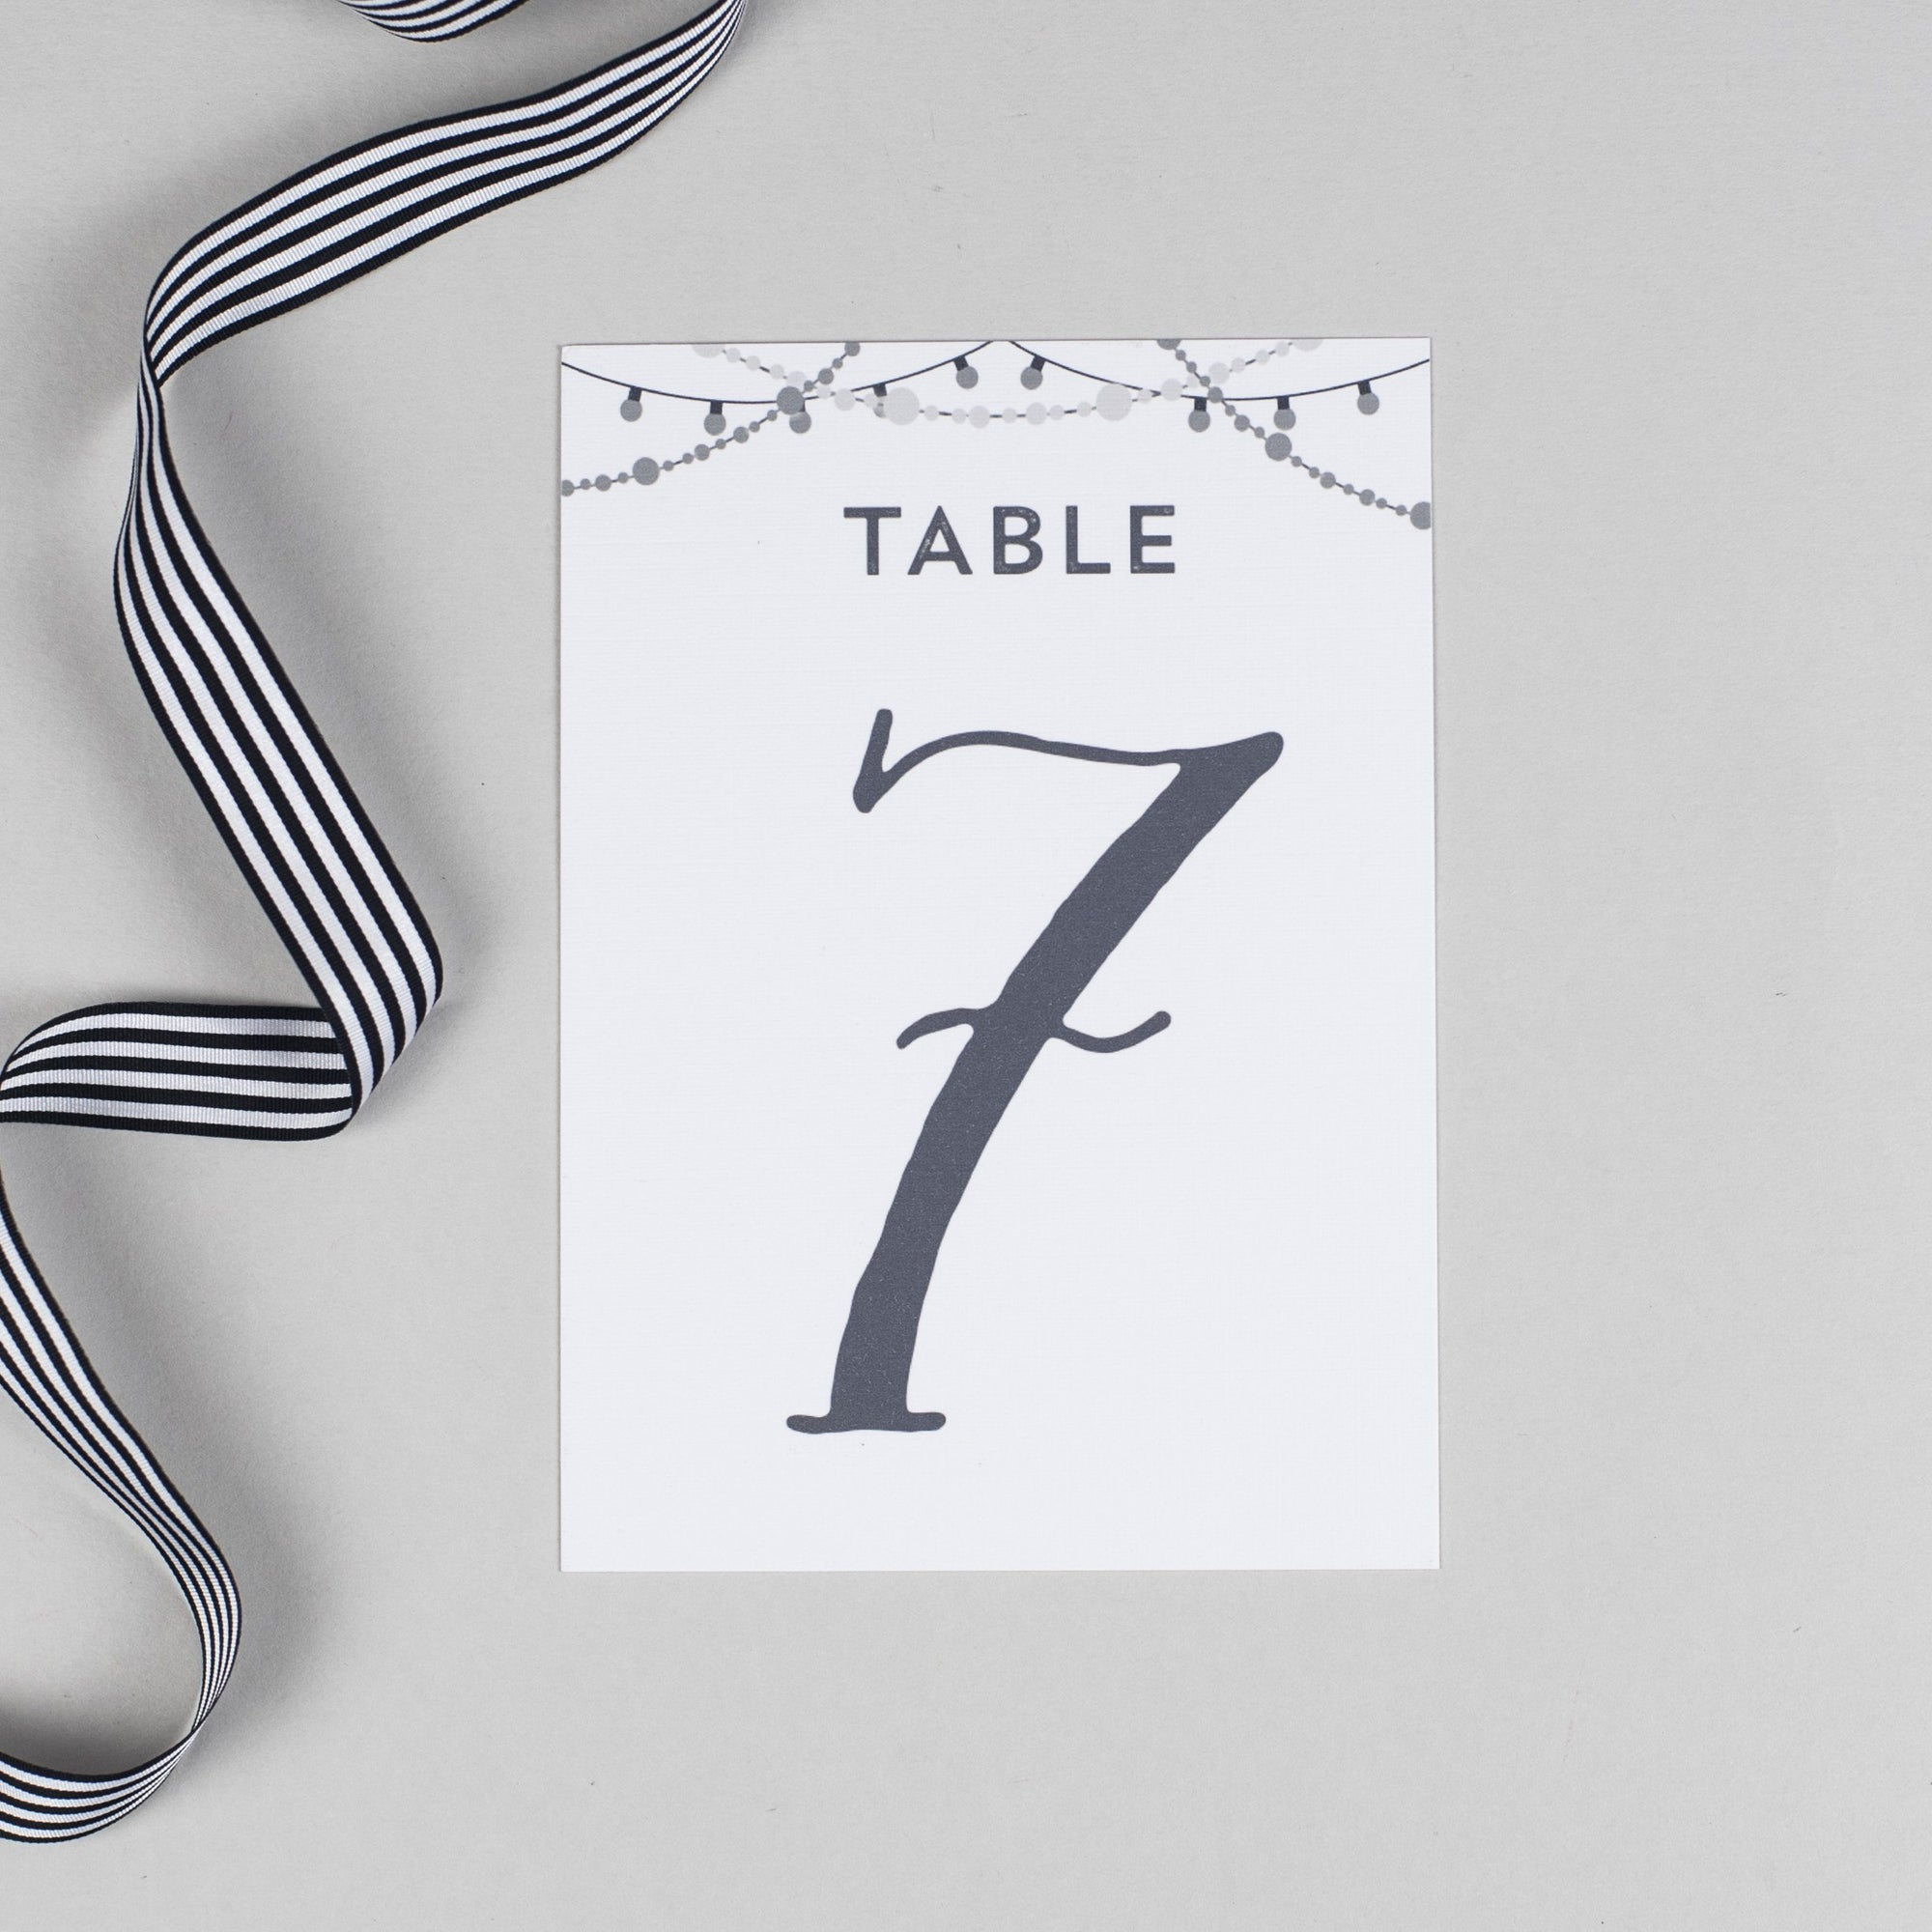 Table Number - Lizzie - Chalkboard Fairy Lights